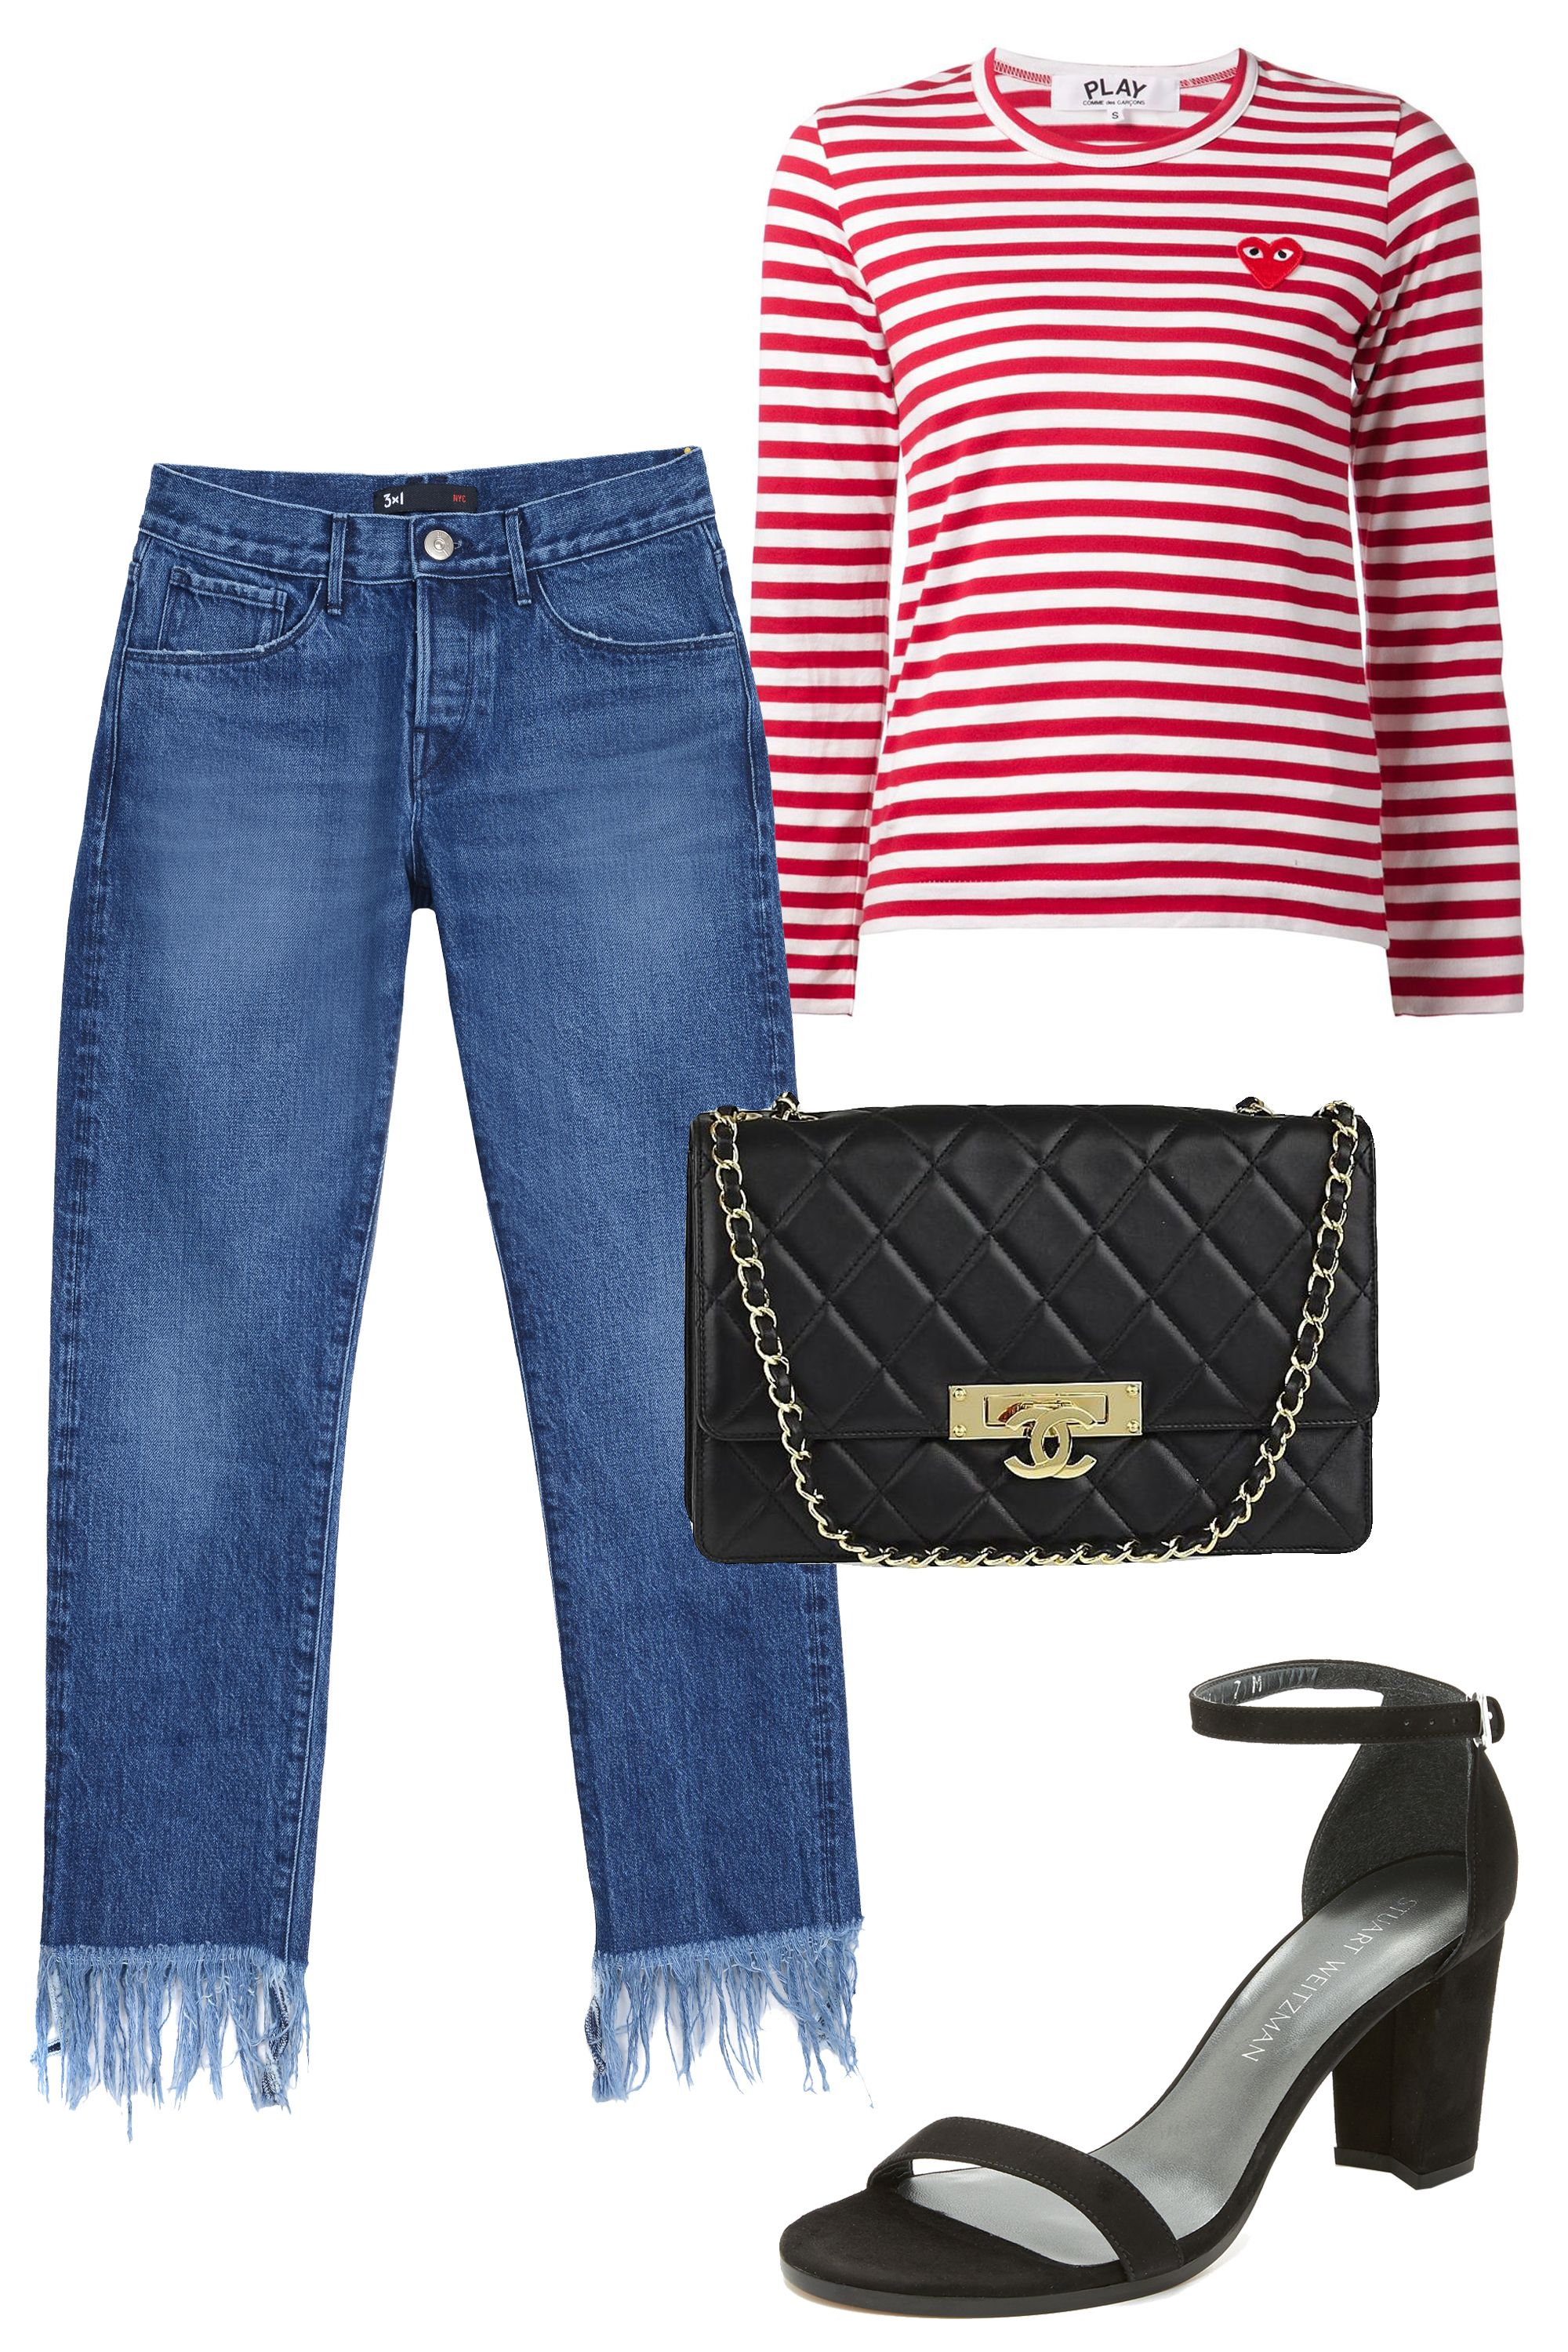 "<p>This fashion week I'm keeping it as comfortable as possible! Cool jeans, a striped t-shirt, and low block heels will be a go-to outfit combo of mine. <em data-redactor-tag=""em"" data-verified=""redactor"">—Nikki Ogunnaike, ELLE.com Senior Fashion Editor</em><em data-redactor-tag=""em"" data-verified=""redactor""></em></p><p><em data-redactor-tag=""em"" data-verified=""redactor"">Comme des Garcons Play Long Sleeve Striped T-Shirt, $116; <a href=""https://urldefense.proofpoint.com/v2/url?u=http-3A__www.farfetch.com_shopping_women_Comme-2DDes-2DGarons-2DPlay-2Dlong-2Dsleeve-2Dstriped-2DT-2Dshirt-2Ditem-2D10888110.aspx-3Fgclid-3DCPWov4vf-5Fc4CFQyRaQod9owAvg-26fsb-3D1-26ef-5Fid-3DV727QwAAAfSoBHPk-3A20160907170707-3As&d=DQMFaQ&c=B73tqXN8Ec0ocRmZHMCntw&r=MD9PON_3e_YfvBNZlbD4wy2VpCsZUH7wLDWAZkHMYao&m=5rE6Ix0mt_-SIADqiaKwENKZbn7_ISdIiUbdbndJEIY&s=kpPhSLrAcQFvYCudFzO1BBxlfATBmcFsb3PkQTYMZRs&e="" target=""_blank"">farfetch.com</a></em></p><p><em data-redactor-tag=""em"" data-verified=""redactor"">3x1 Crop Fringe Jeans, $325; <a href=""https://urldefense.proofpoint.com/v2/url?u=http-3A__www.barneys.com_product_3x1-2Dcrop-2Dfringe-2Djeans-2D504734134.html&d=DQMFaQ&c=B73tqXN8Ec0ocRmZHMCntw&r=MD9PON_3e_YfvBNZlbD4wy2VpCsZUH7wLDWAZkHMYao&m=5rE6Ix0mt_-SIADqiaKwENKZbn7_ISdIiUbdbndJEIY&s=T73C6Om4BW51ZYWPfWABtMYIvh7xTzwrzlOmSVGVH-8&e="" target=""_blank"">barneys.com</a></em></p><p><em data-redactor-tag=""em"" data-verified=""redactor"">Stuart Weitzman Nearlynude Sandals, $398; <a href=""https://urldefense.proofpoint.com/v2/url?u=https-3A__www.shopbop.com_nearlynude-2Dsandal-2Dstuart-2Dweitzman_vp_v-3D1_1553615206.htm-3FcurrencyCode-3DUSD-26extid-3DSE-5Ffroogle-5FSC-5Fusa-26cvosrc-3Dcse.google.STUAR20481-26cvo-5Fcampaign-3DSB-5FGoogle-5FUSD-26s-5Fkwcid-3DAL-213510-213-21-257Bcreative-257D-21-257Bmatchtype-257D-21-257Bplacement-257D-21-257Bnetwork-257D-21-21-257Bkeyword-257D-26ef-5Fid-3DV727QwAAAfSoBHPk-3A20160907170804-3As&d=DQMFaQ&c=B73tqXN8Ec0ocRmZHMCntw&r=MD9PON_3e_YfvBNZlbD4wy2VpCsZUH7wLDWAZkHMYao&m=5rE6Ix0mt_-SIADqiaKwENKZbn7_ISdIiUbdbndJEIY&s=tFdE8ZZXf9q1NEIrEuMV-lImVJ_HcKAbH1ySJanxeFU&e="" target=""_blank"">shopbop.com</a></em></p><p><em data-redactor-tag=""em"" data-verified=""redactor"">Chanel Golden Class Large Medium Black Gold Flap Shoulder Bag, $3,150; </em><a href=""https://urldefense.proofpoint.com/v2/url?u=https-3A__www.tradesy.com_bags_chanel-2Dshoulder-2Dbag-2Dnavy-2D16146301_-3Futm-5Fmedium-3Dpla-26utm-5Fsource-3Dgpl-26gclid-3DCPf4o7Xf-5Fc4CFZQAaQodBQgM6g-26gclsrc-3Daw.ds&d=DQMFaQ&c=B73tqXN8Ec0ocRmZHMCntw&r=MD9PON_3e_YfvBNZlbD4wy2VpCsZUH7wLDWAZkHMYao&m=5rE6Ix0mt_-SIADqiaKwENKZbn7_ISdIiUbdbndJEIY&s=WiT5RFq5ZL58hA37-j6t4S2DtybH6CwNlHWkm8zY4qA&e="" target=""_blank""><em data-redactor-tag=""em"" data-verified=""redactor"">tradesy.com</em></a></p>"